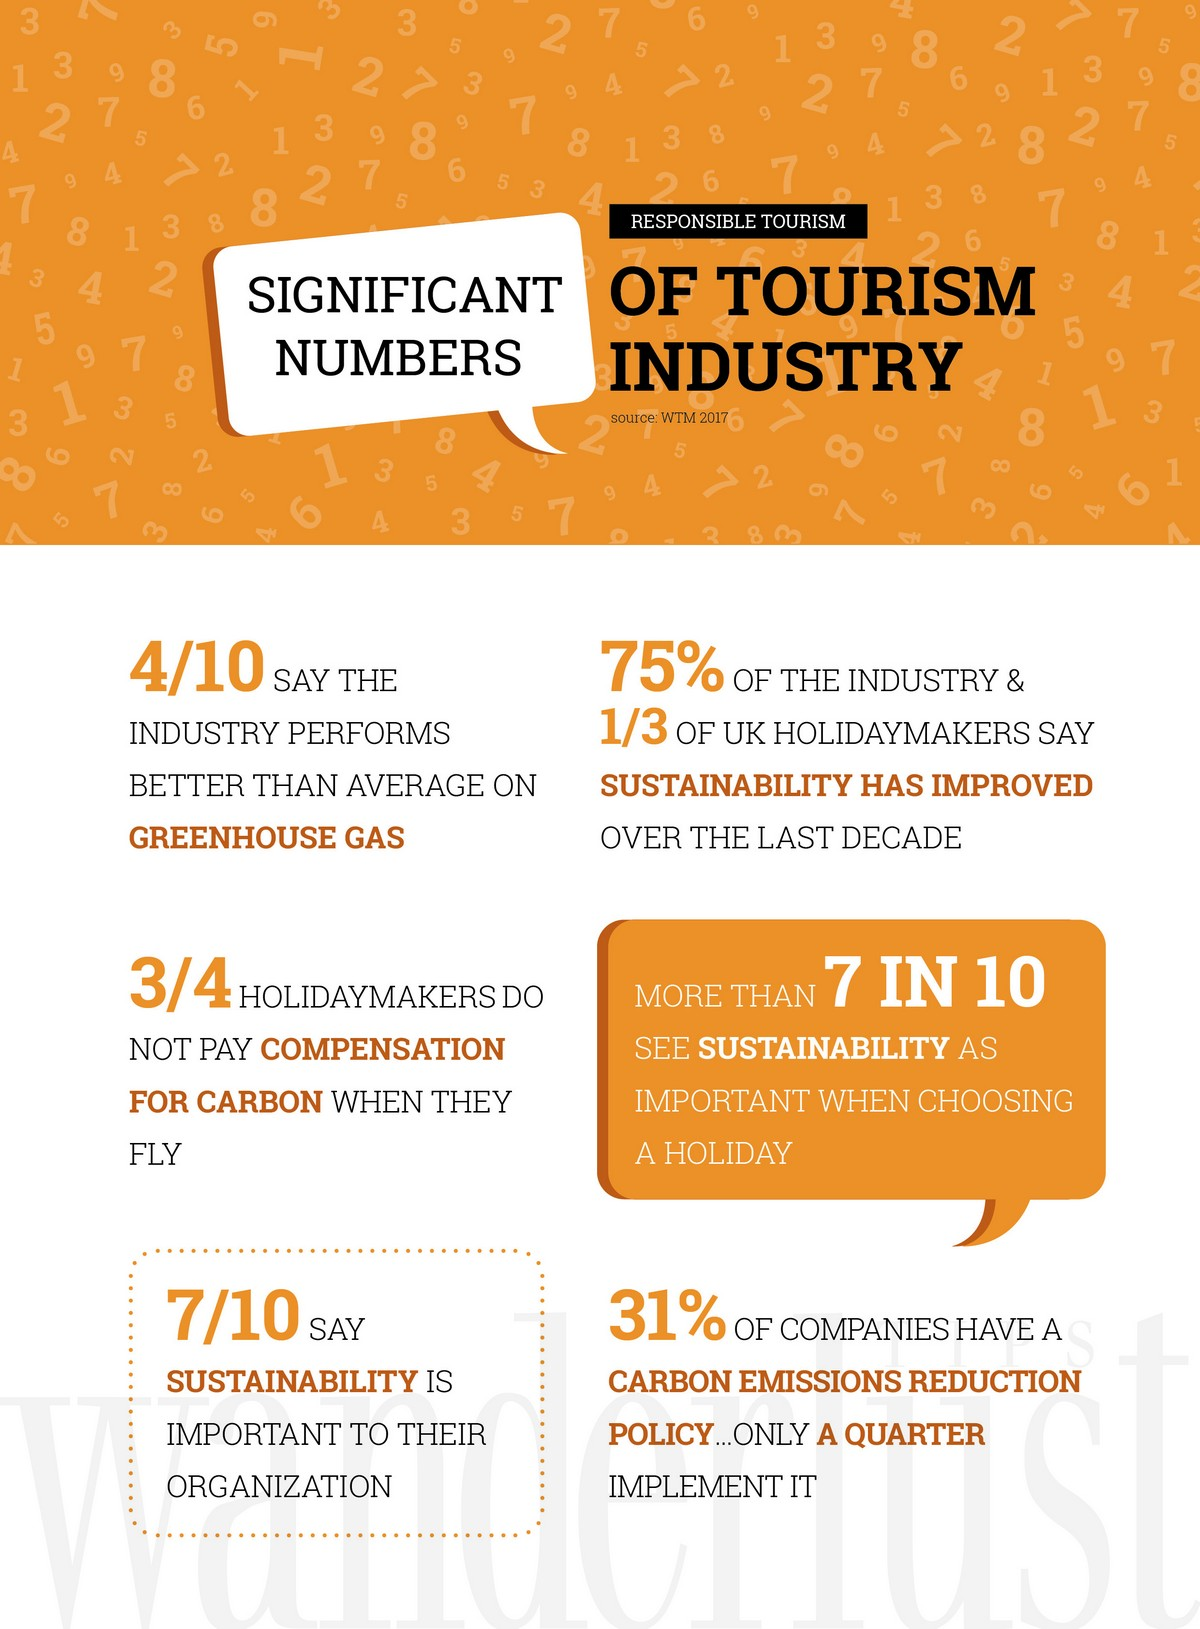 Wanderlust Tips Magazine   Responsible tourism: Significant numbers of tourism industry